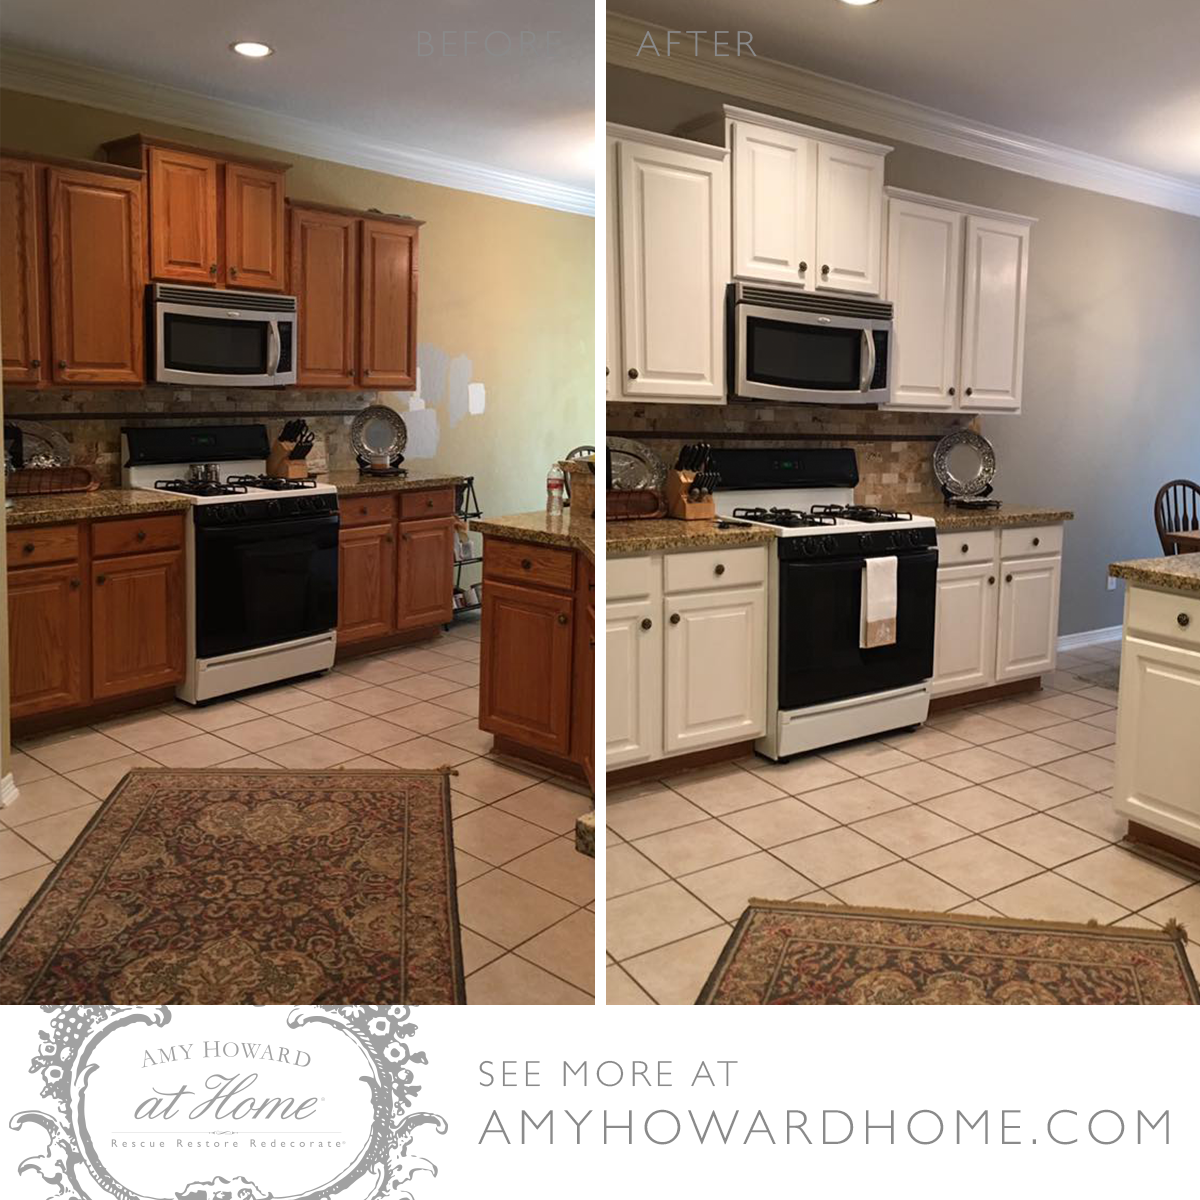 A Wow Worthy Kitchen Makeover That You Can Do In A Weekend Catch The Free Diy Tutorial To Find Out Out How Yo Refinishing Cabinets Diy Furniture Hacks Cabinet